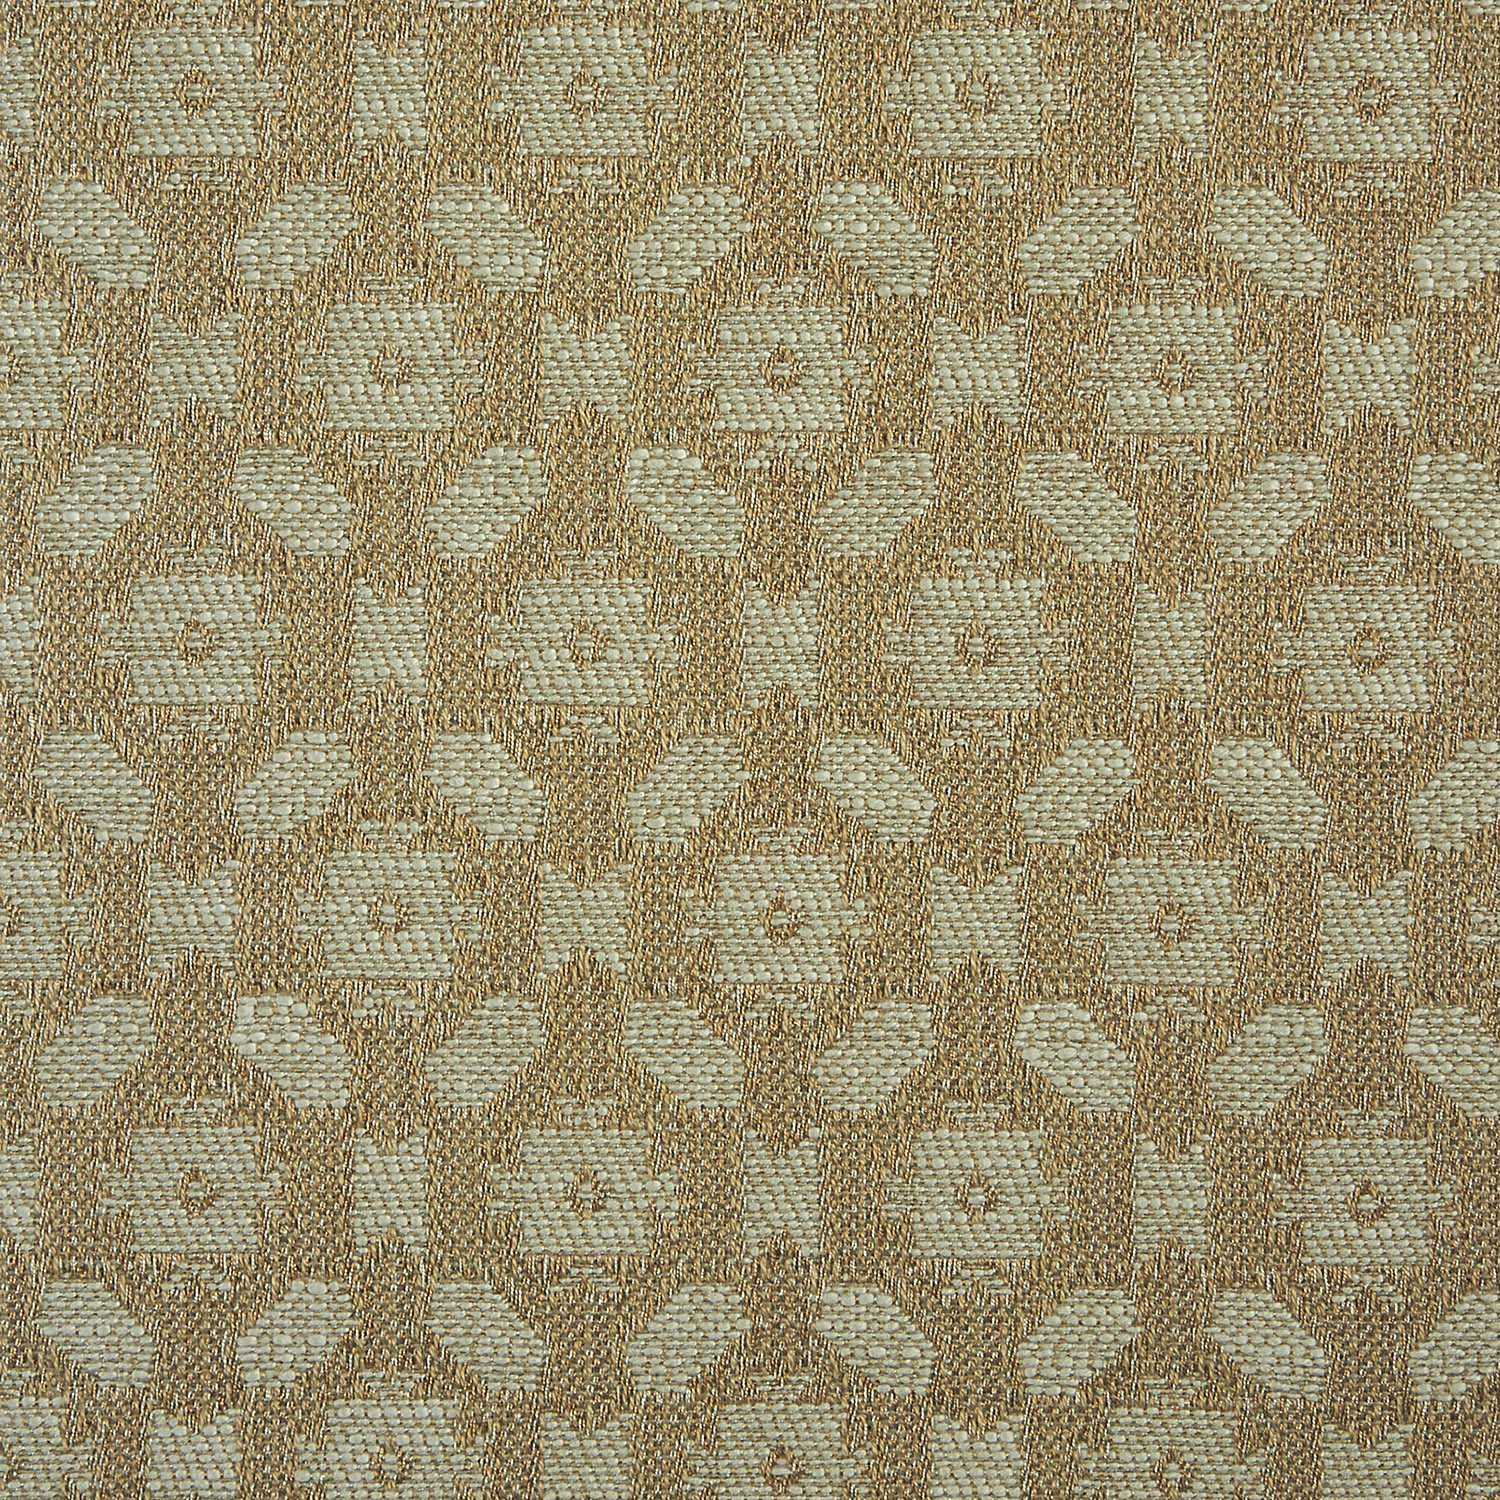 <p><strong>LOWELL</strong>taupe/silver 1700-06<a href=/the-langham-collection/lowell-taupe-silver-1700-06>More →</a></p>